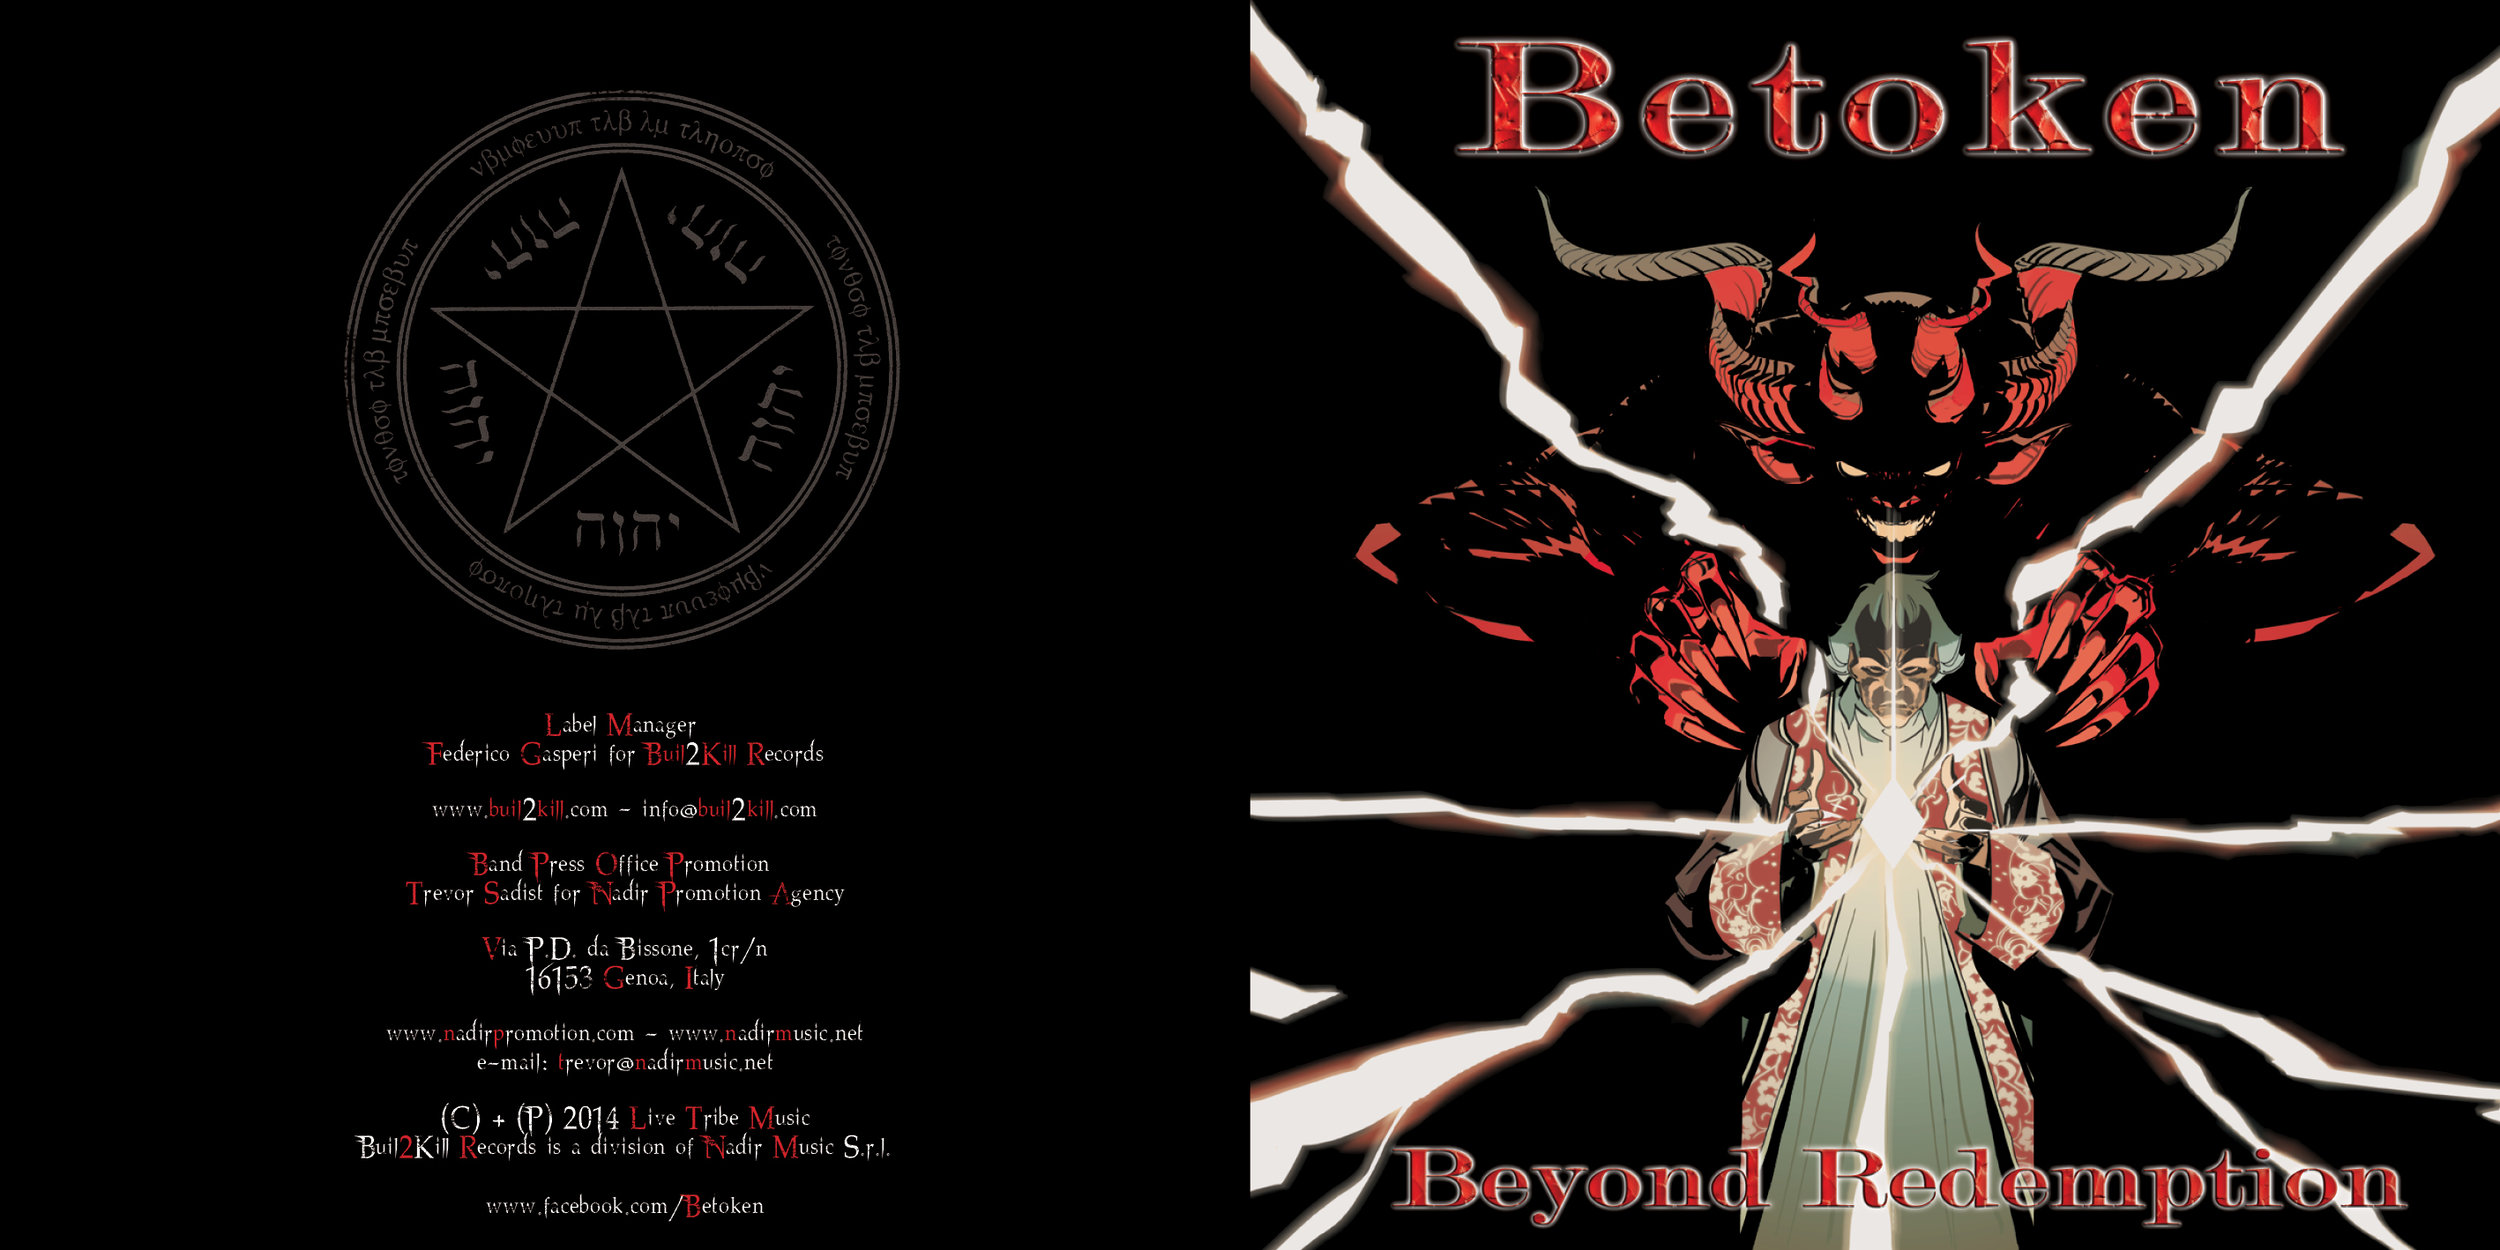 Betoken    –     Beyond Redemption    (2015); cover artwork by  Gigi Cavenago